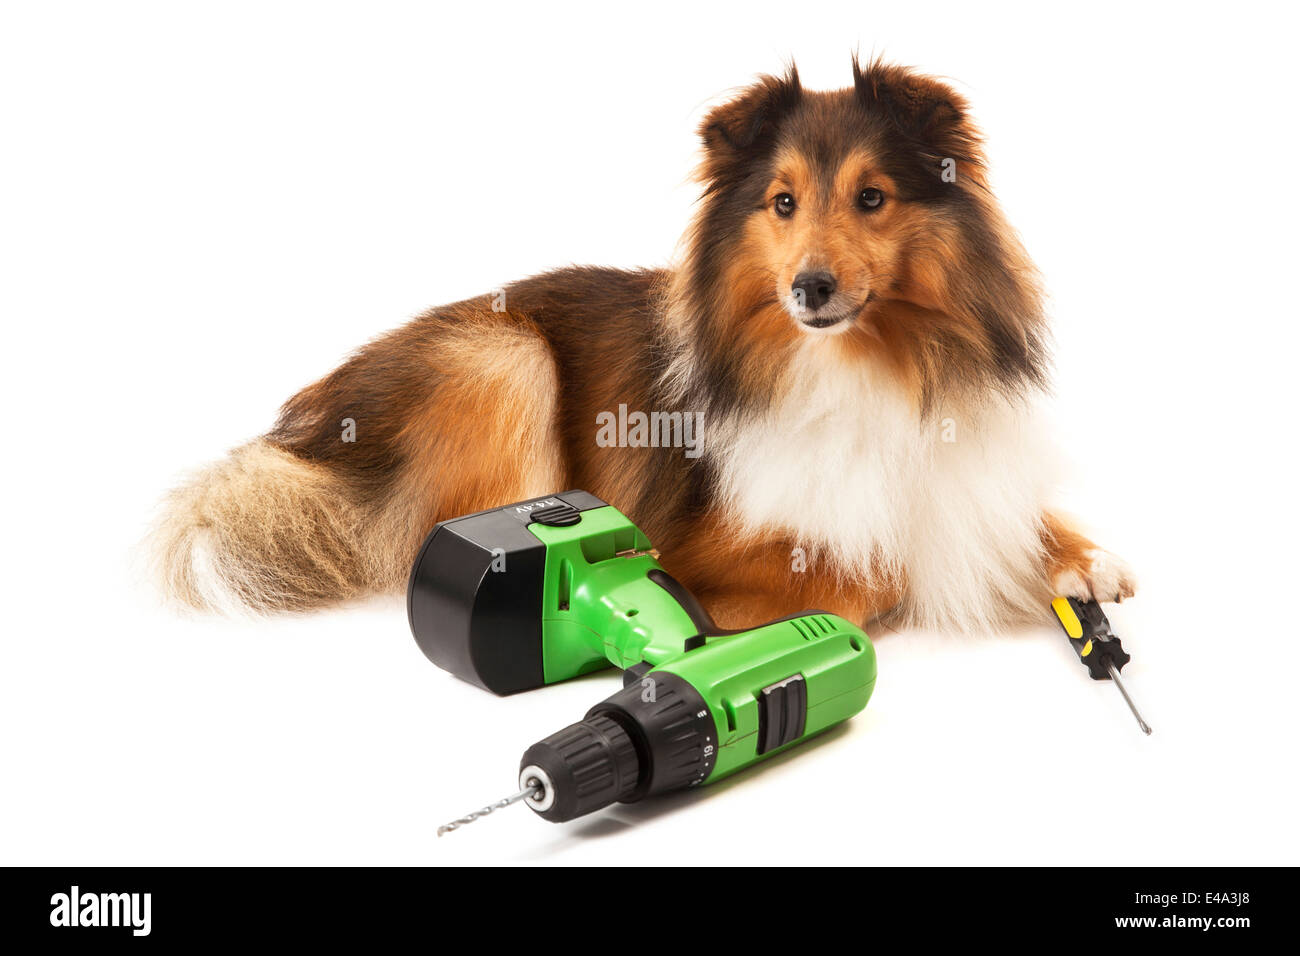 Portrait of dog with drilling machine and screwdriver isolated over white background - Stock Image